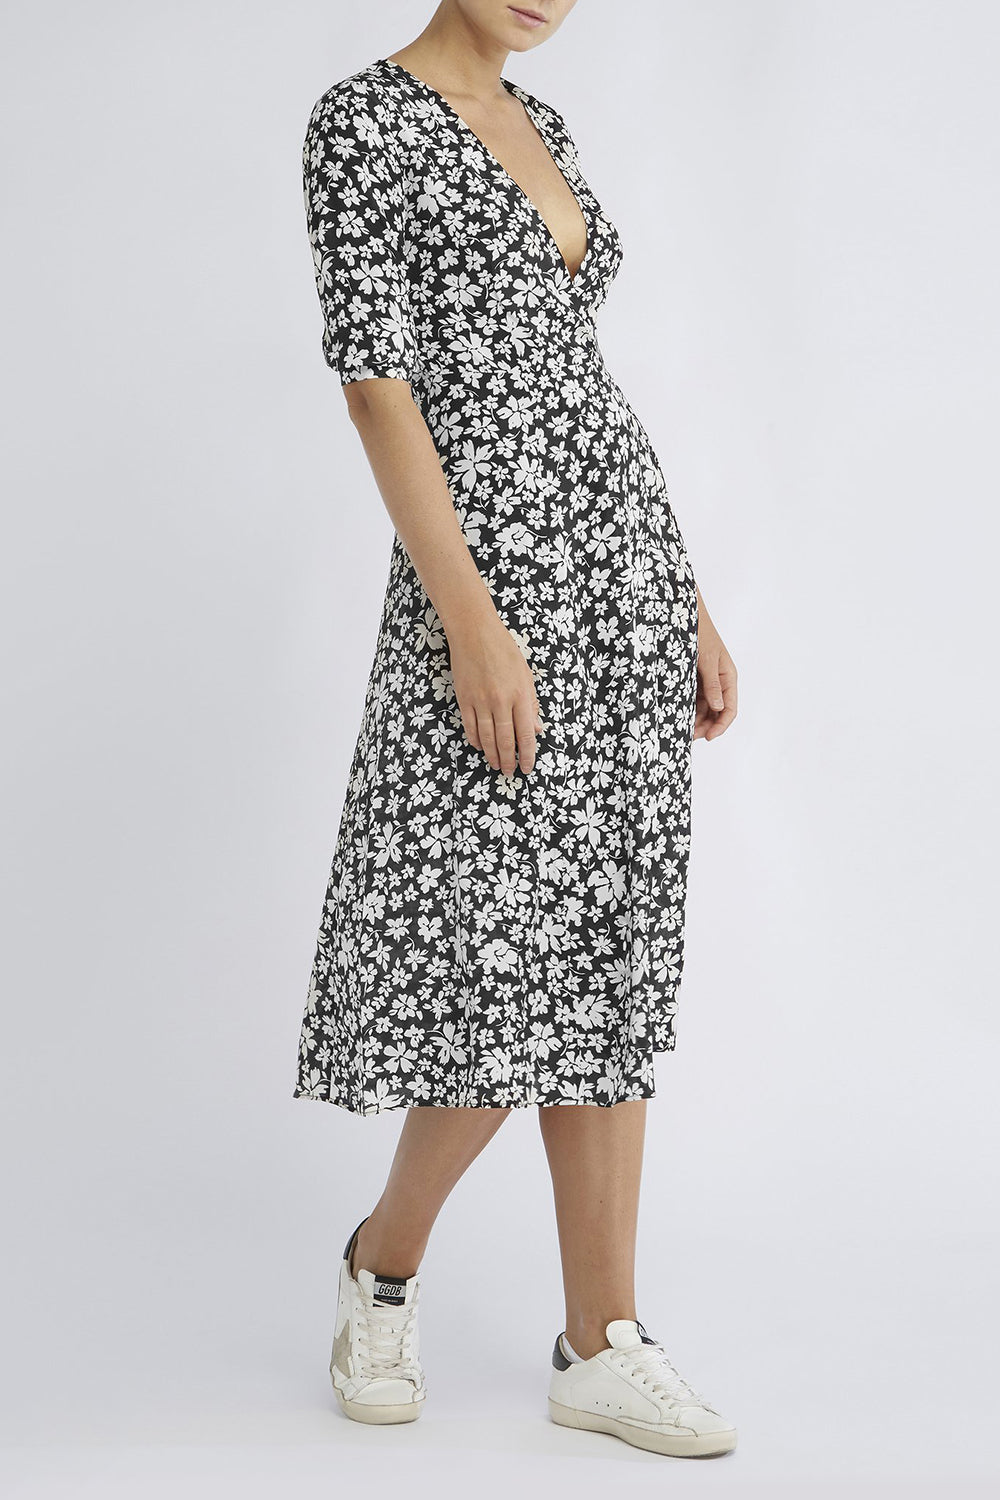 RAE26 - Annika Dress (Noir Silhouette Floral) - Australian Fashion and Accessories Boutique - Faid Store